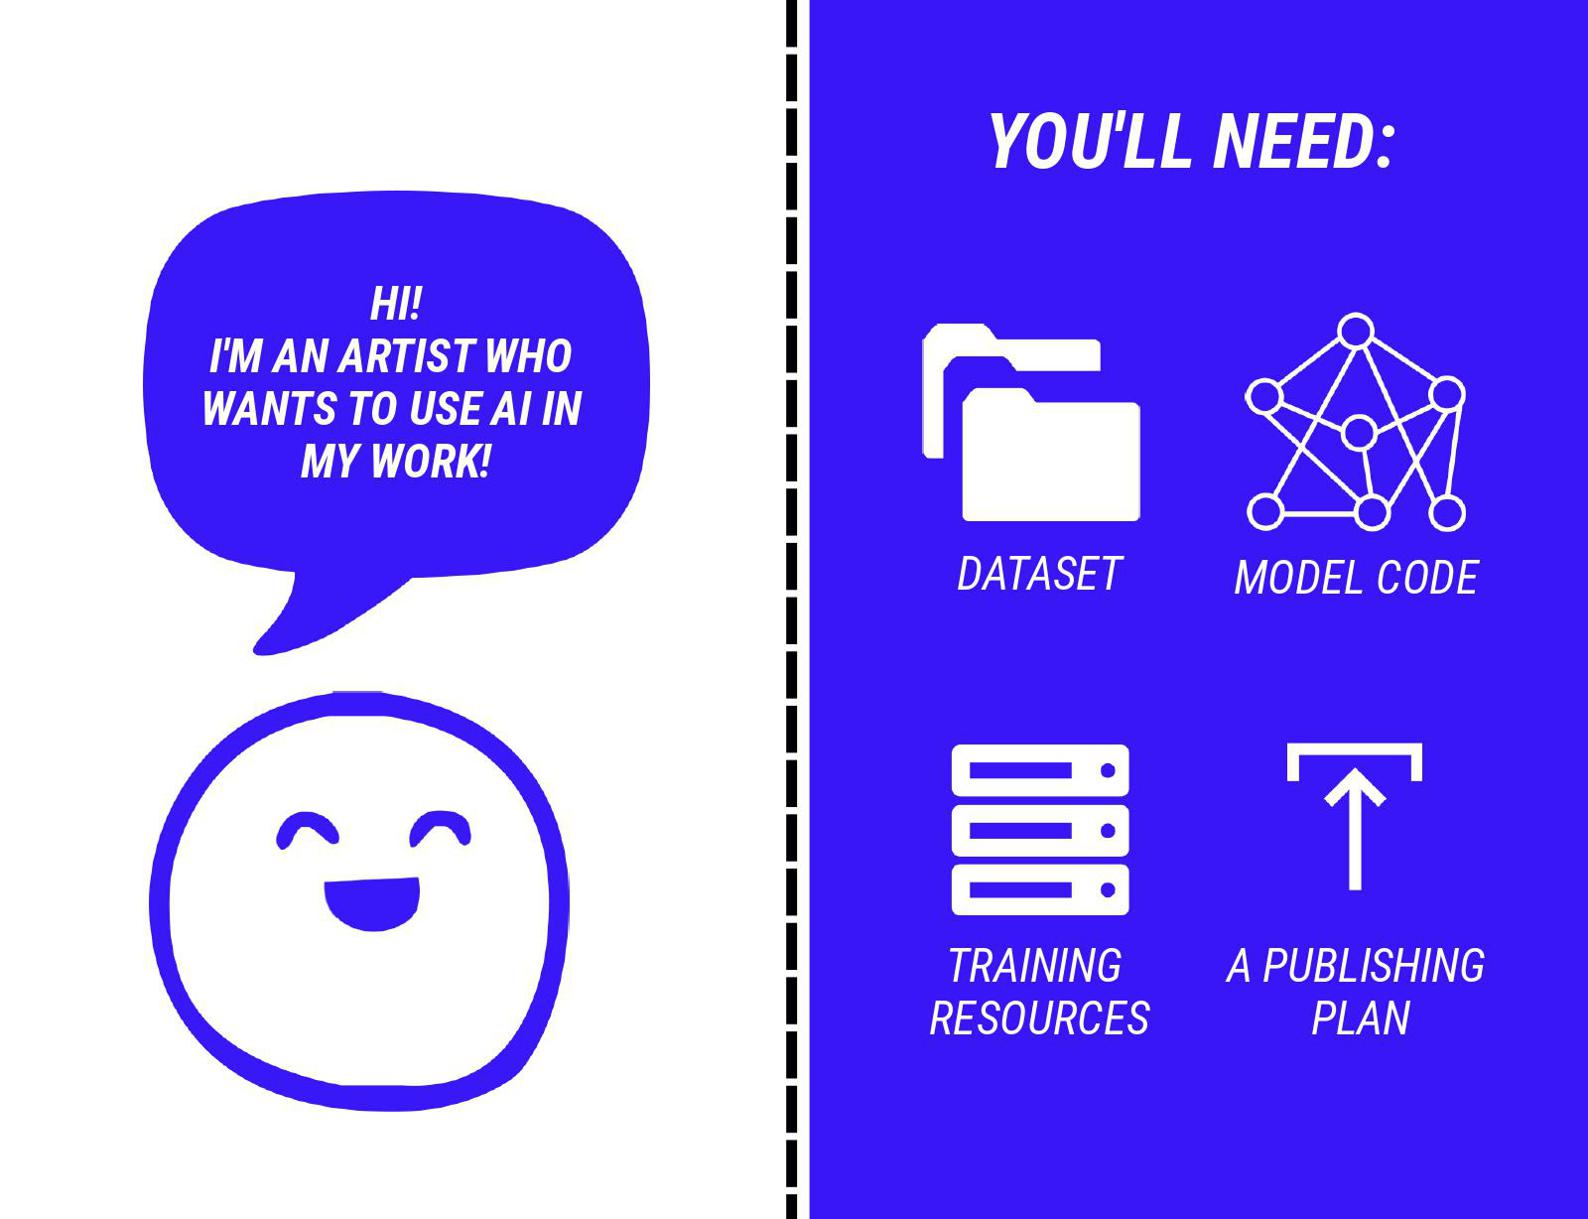 """Left: a cute blob with a speech bubble saying, """"Hi! I'm an artist who wants to use AI in my work!"""" Right: 4 icons with the text """"You'll need: 1) Dataset, 2) Model Code, 3) Training resources, 4) A publishing plan"""""""